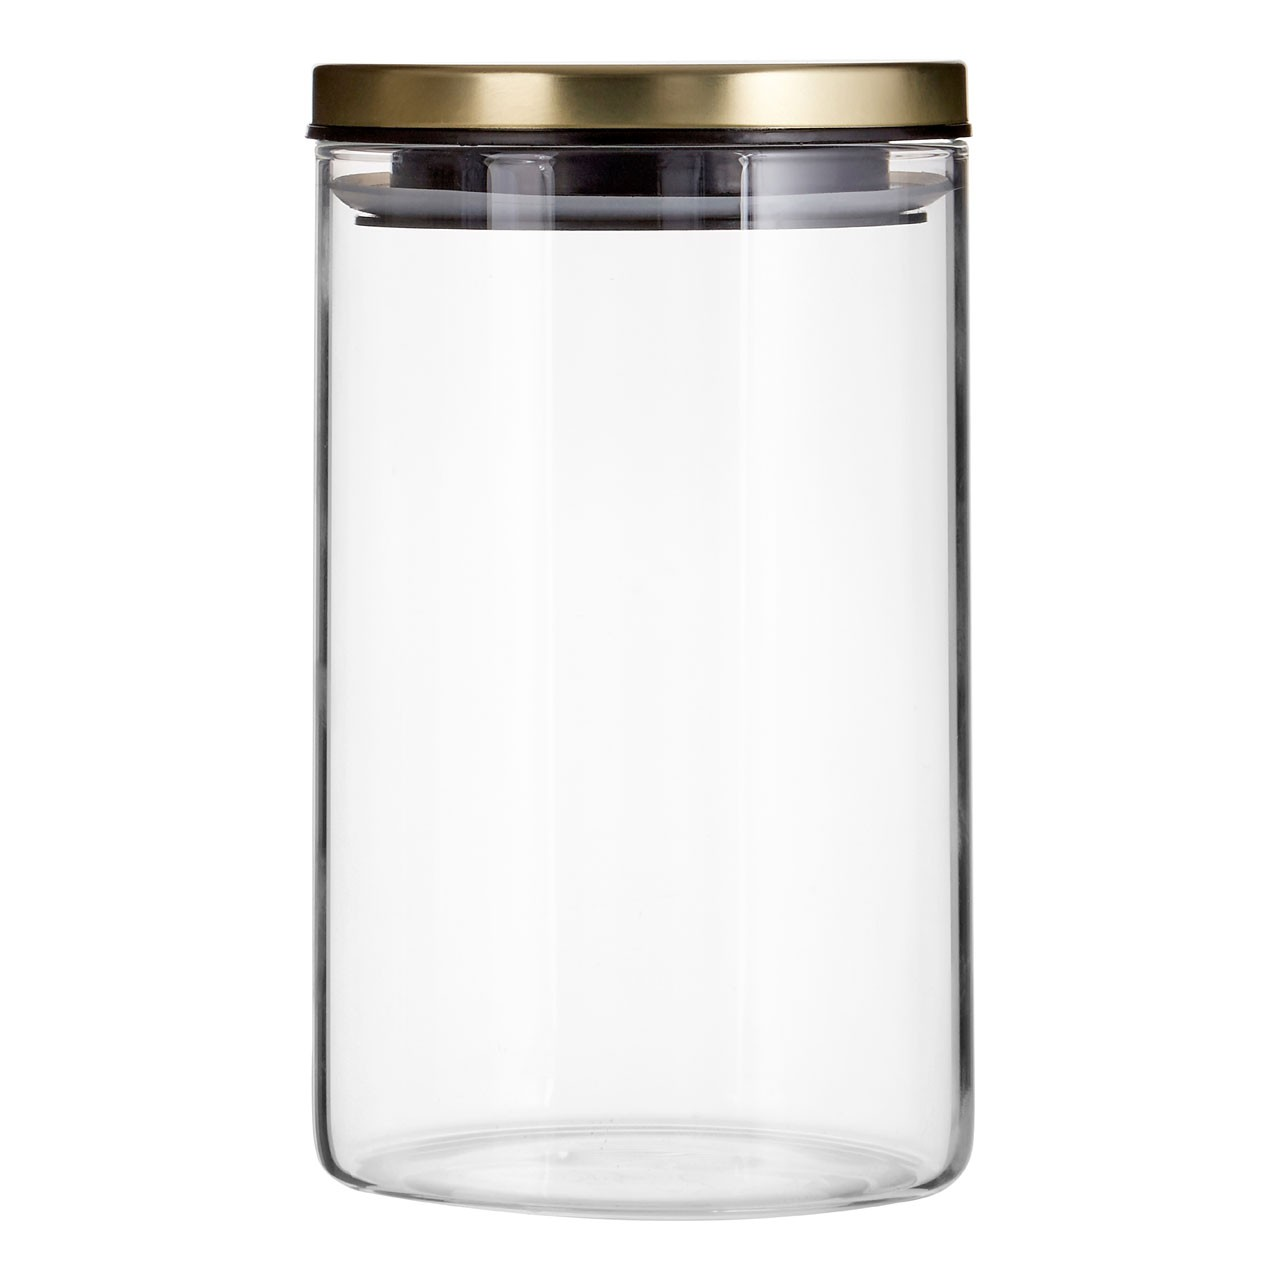 Prime Furnishing Freska Storage Jars, 950 ml, Set Of 3, Gold